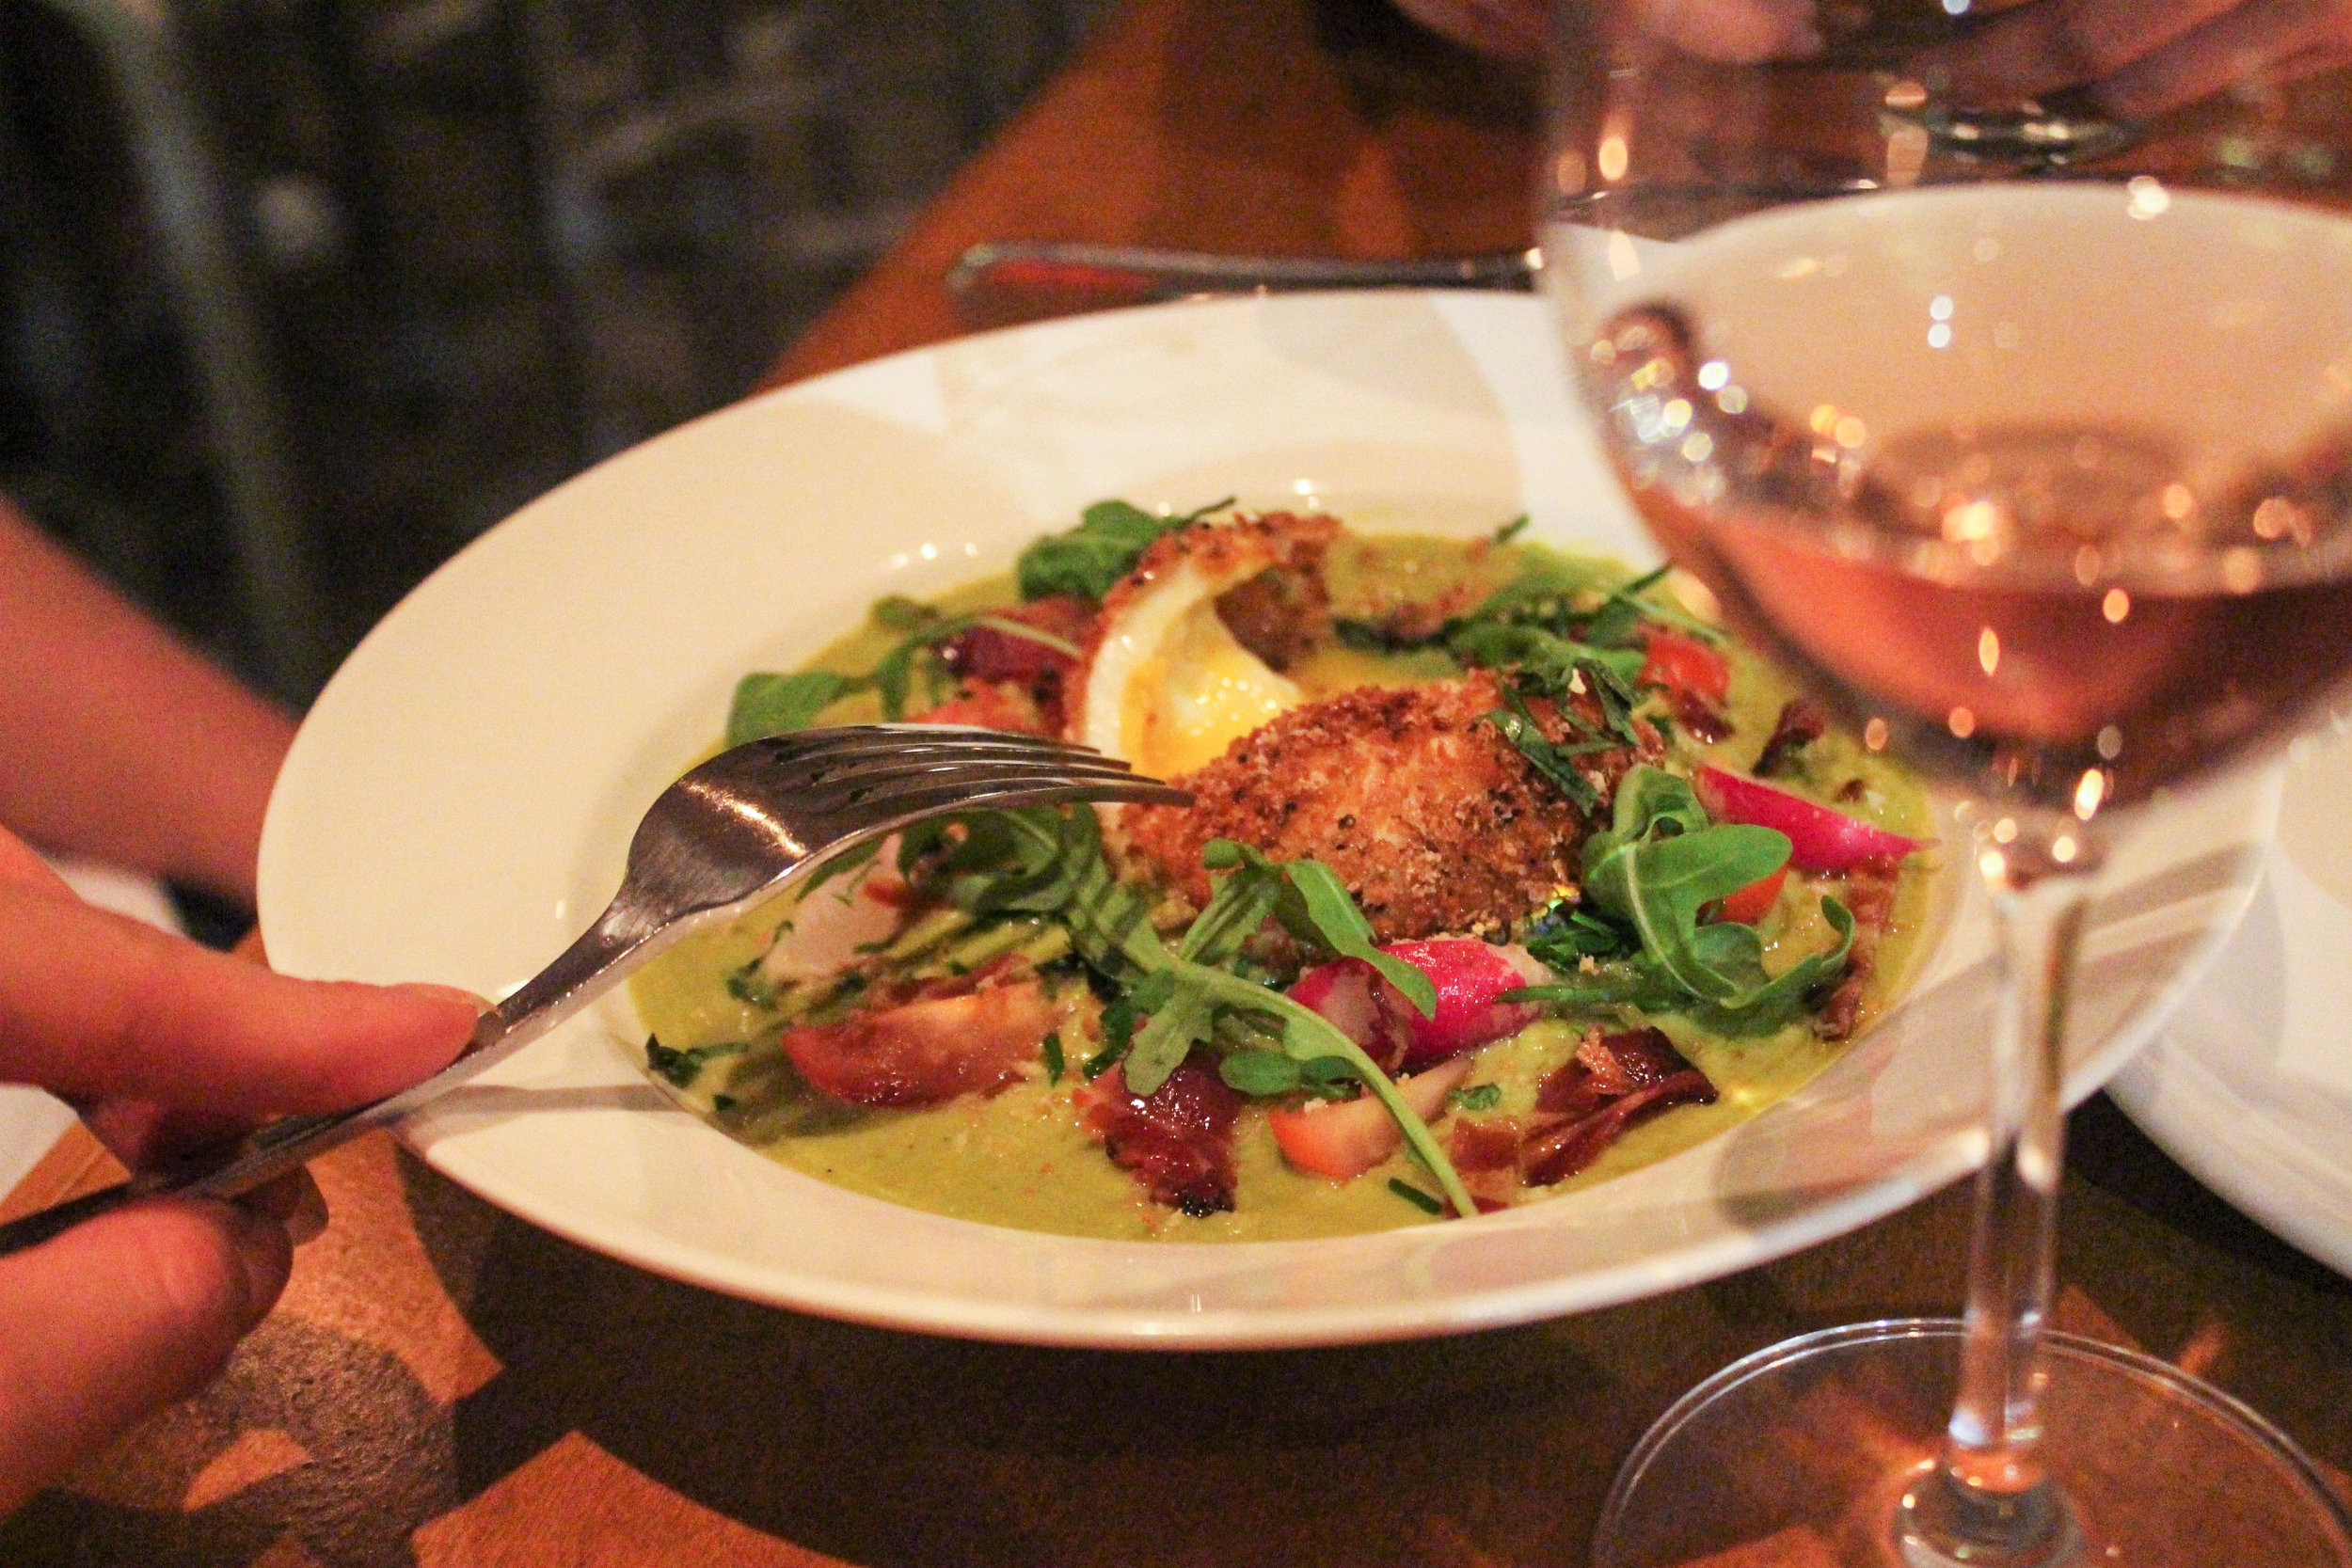 Creamy Asparagus Velouté, Soft Breaded Fried Egg, Herbs, and Bacon at Le Garage